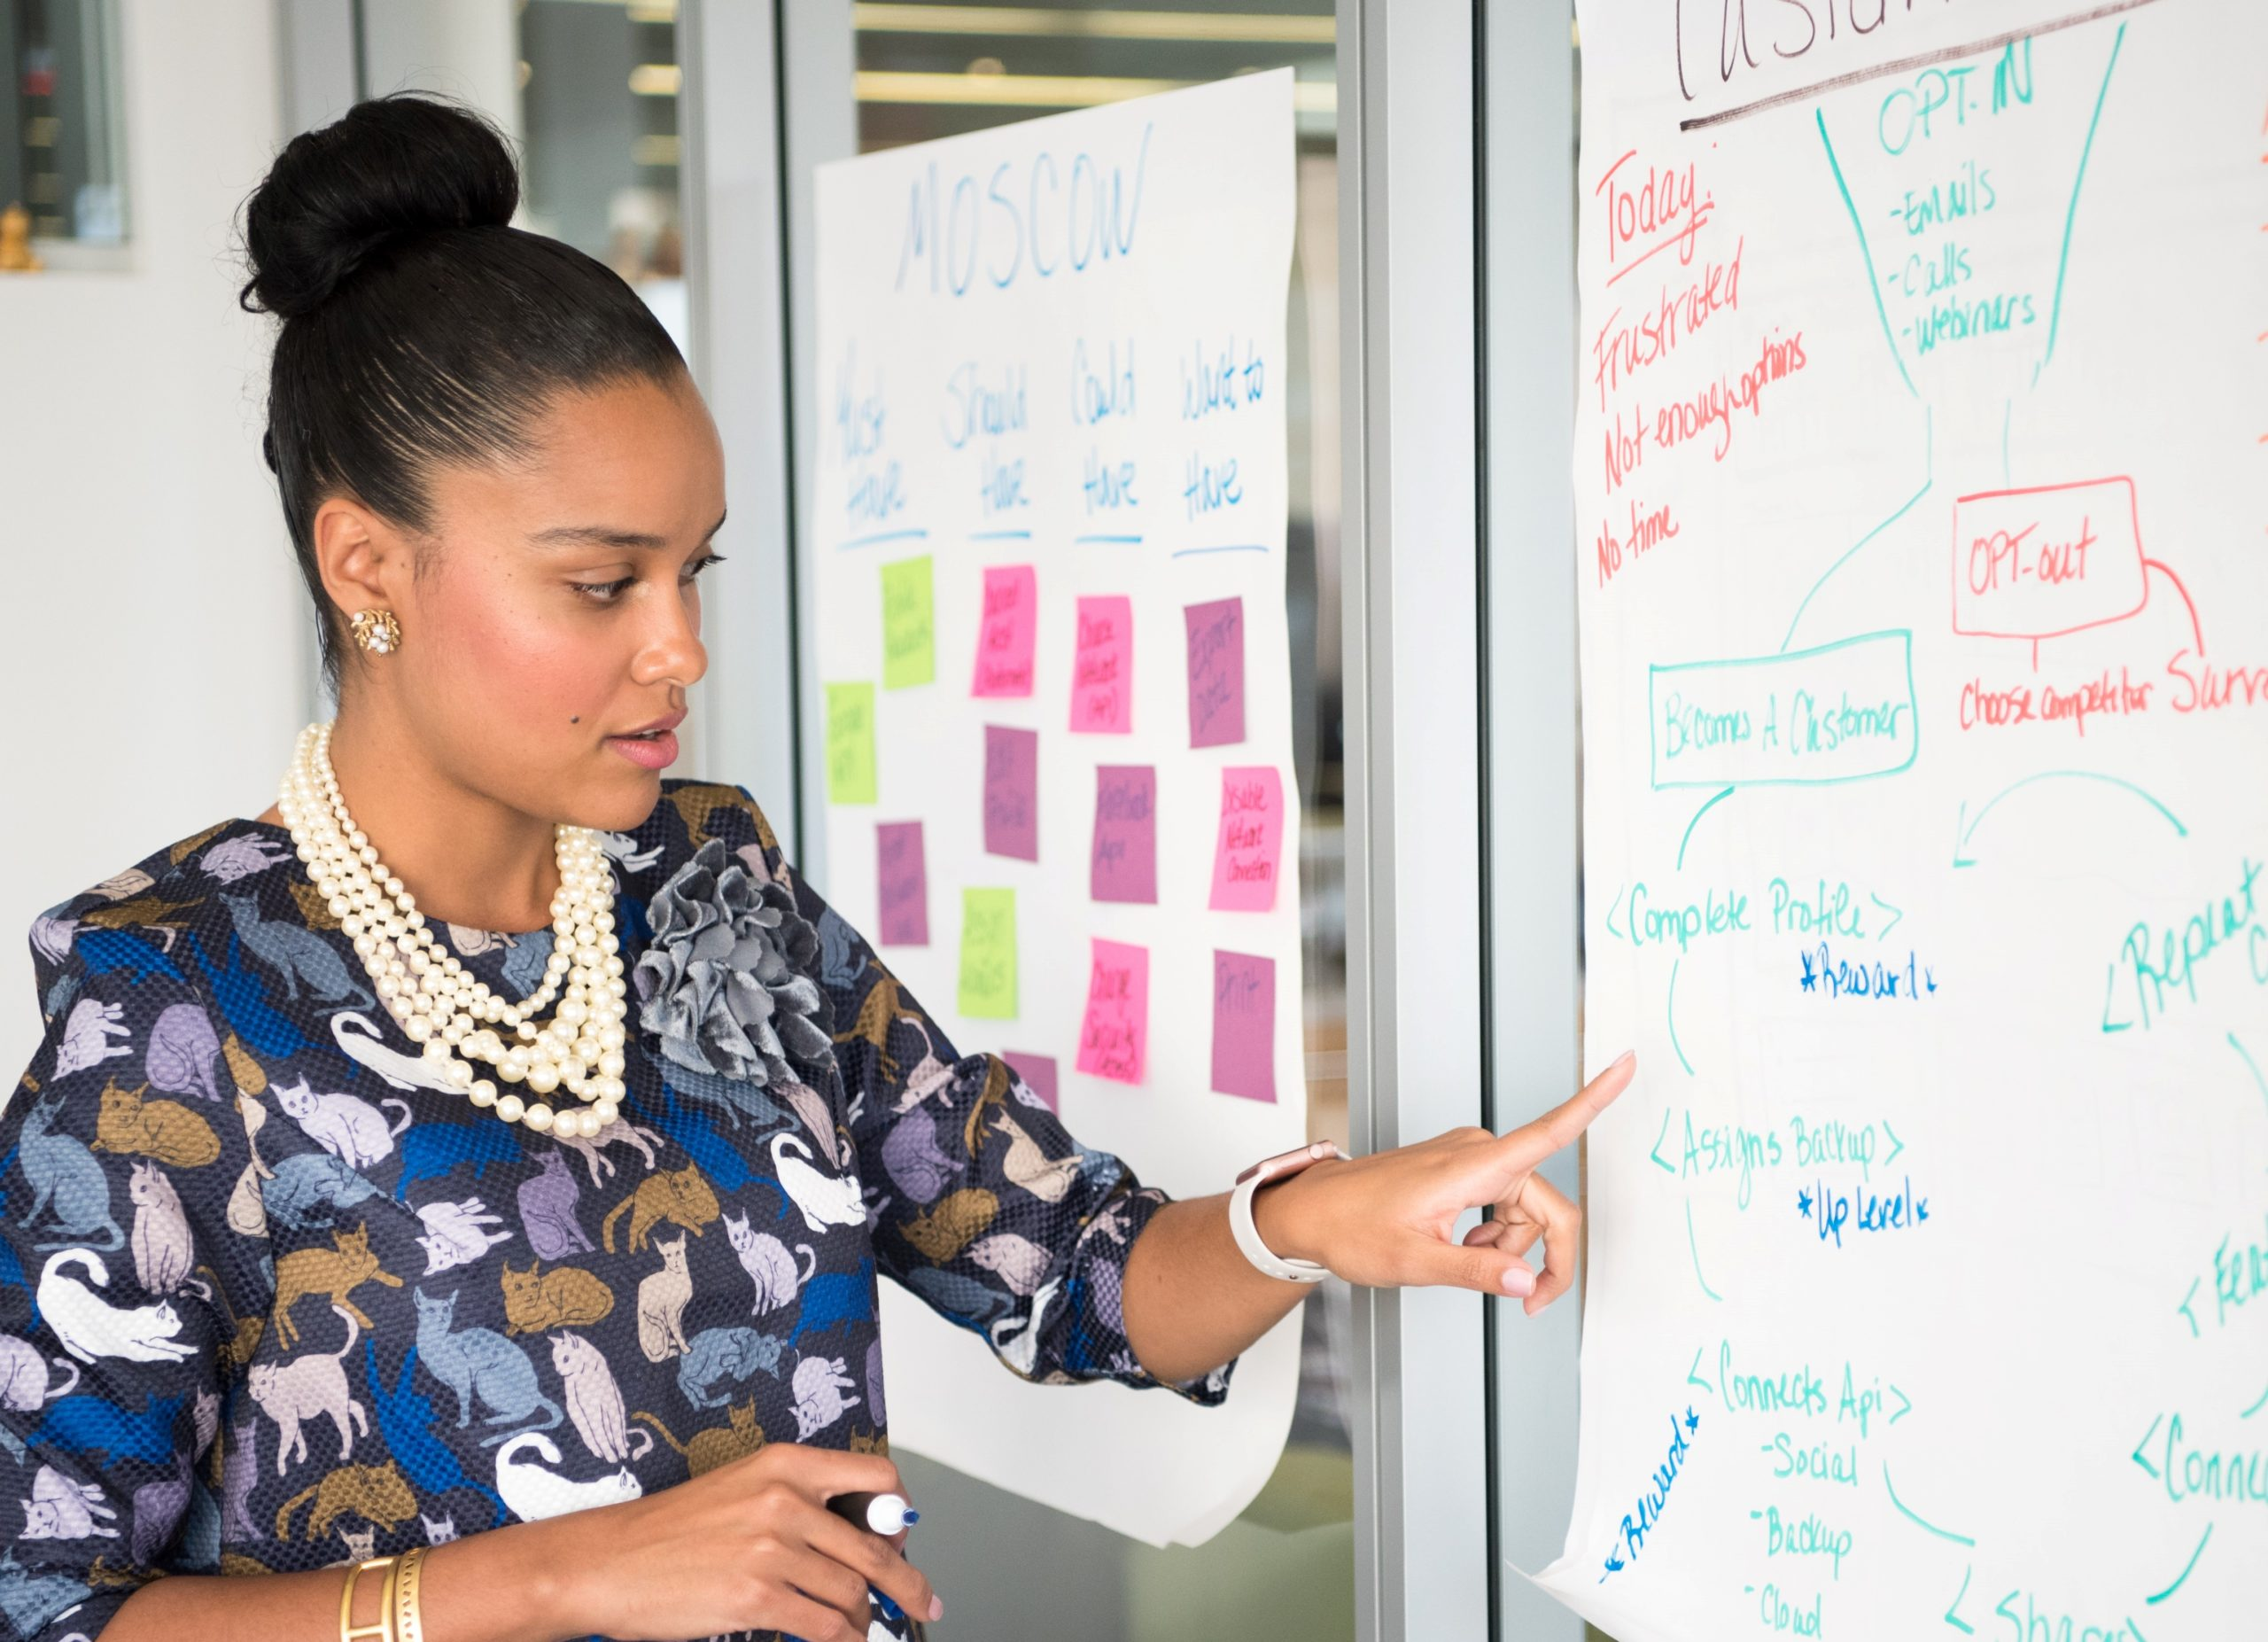 thought leader can benefit from executive coaching